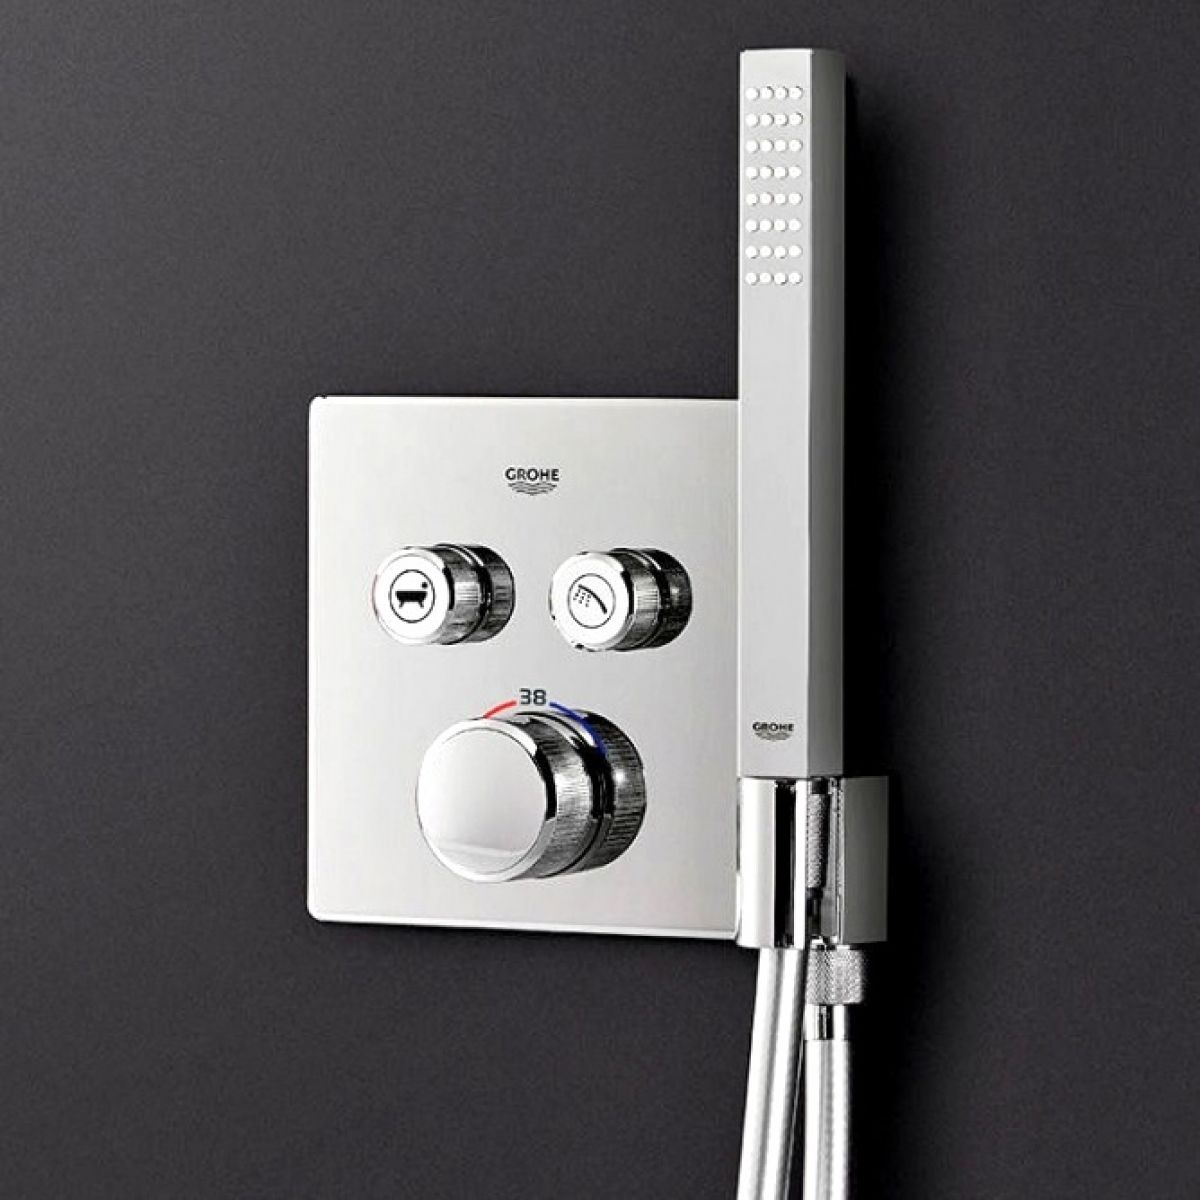 grohe smartcontrol double thermostatic square valve with holder uk bathrooms. Black Bedroom Furniture Sets. Home Design Ideas